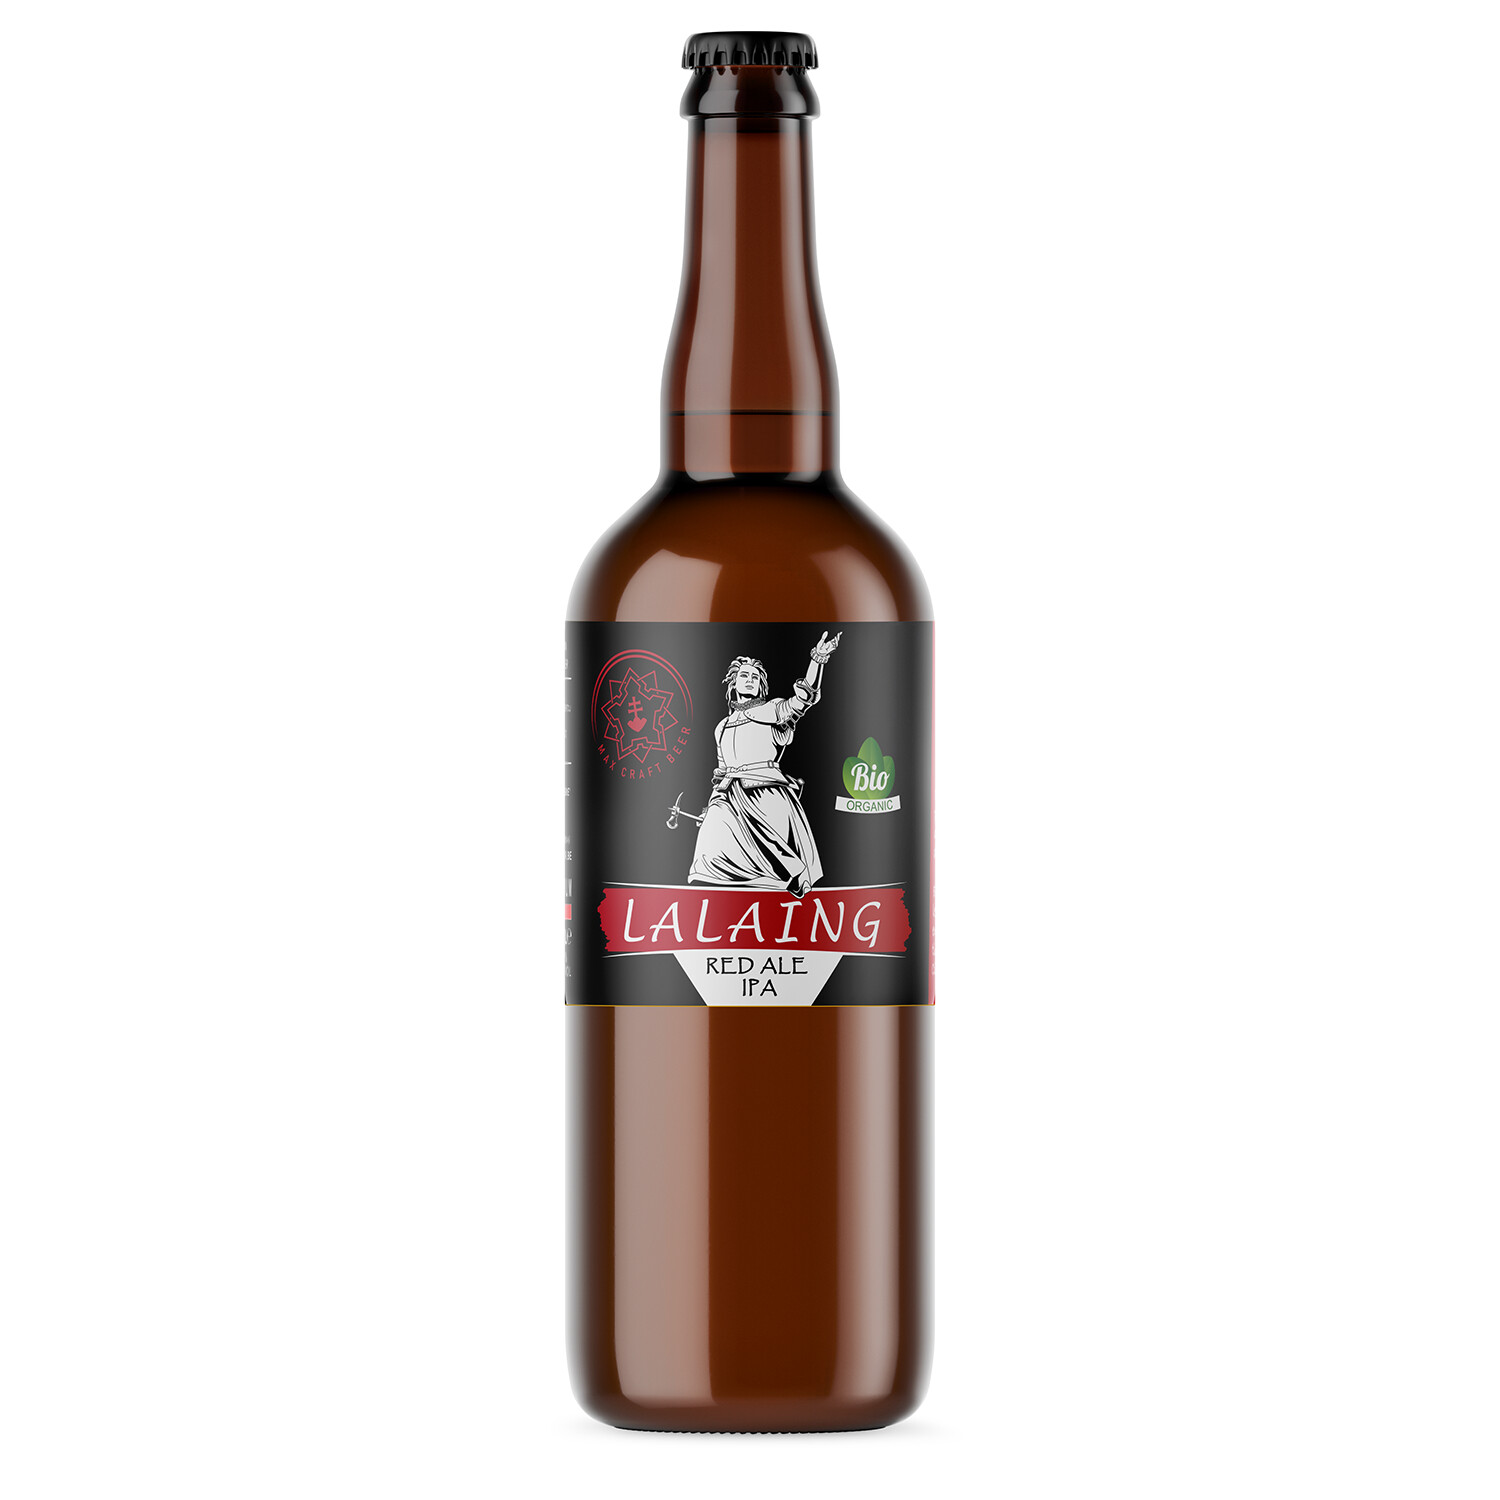 Lalaing Red Ale IPA - bouteille 75cl